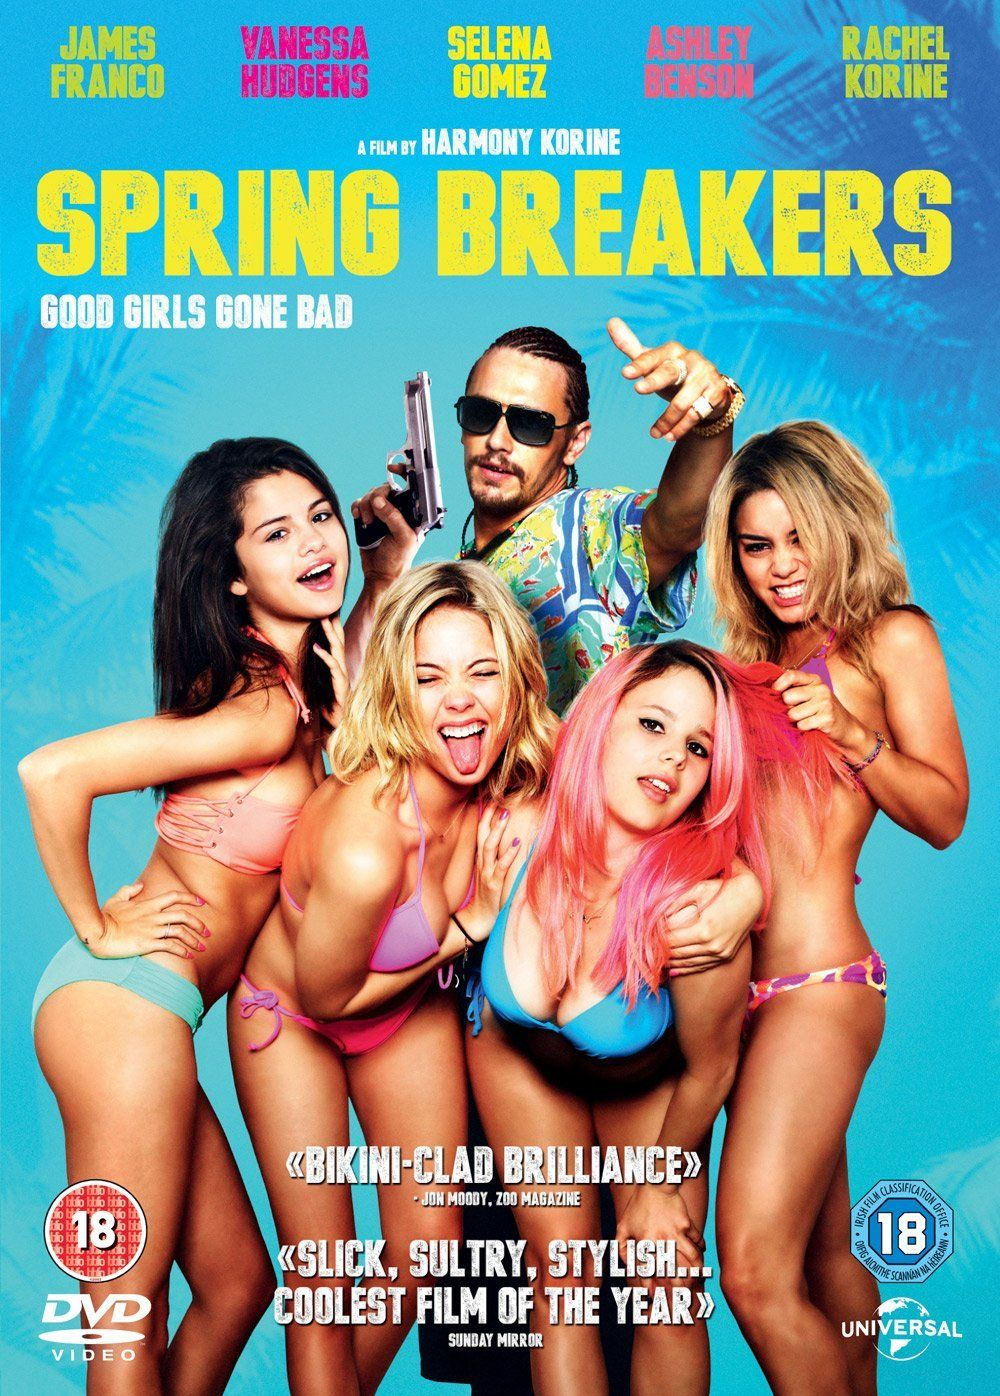 Ashley benson amp vanessa hudgens spring breakers hq - 1 part 3